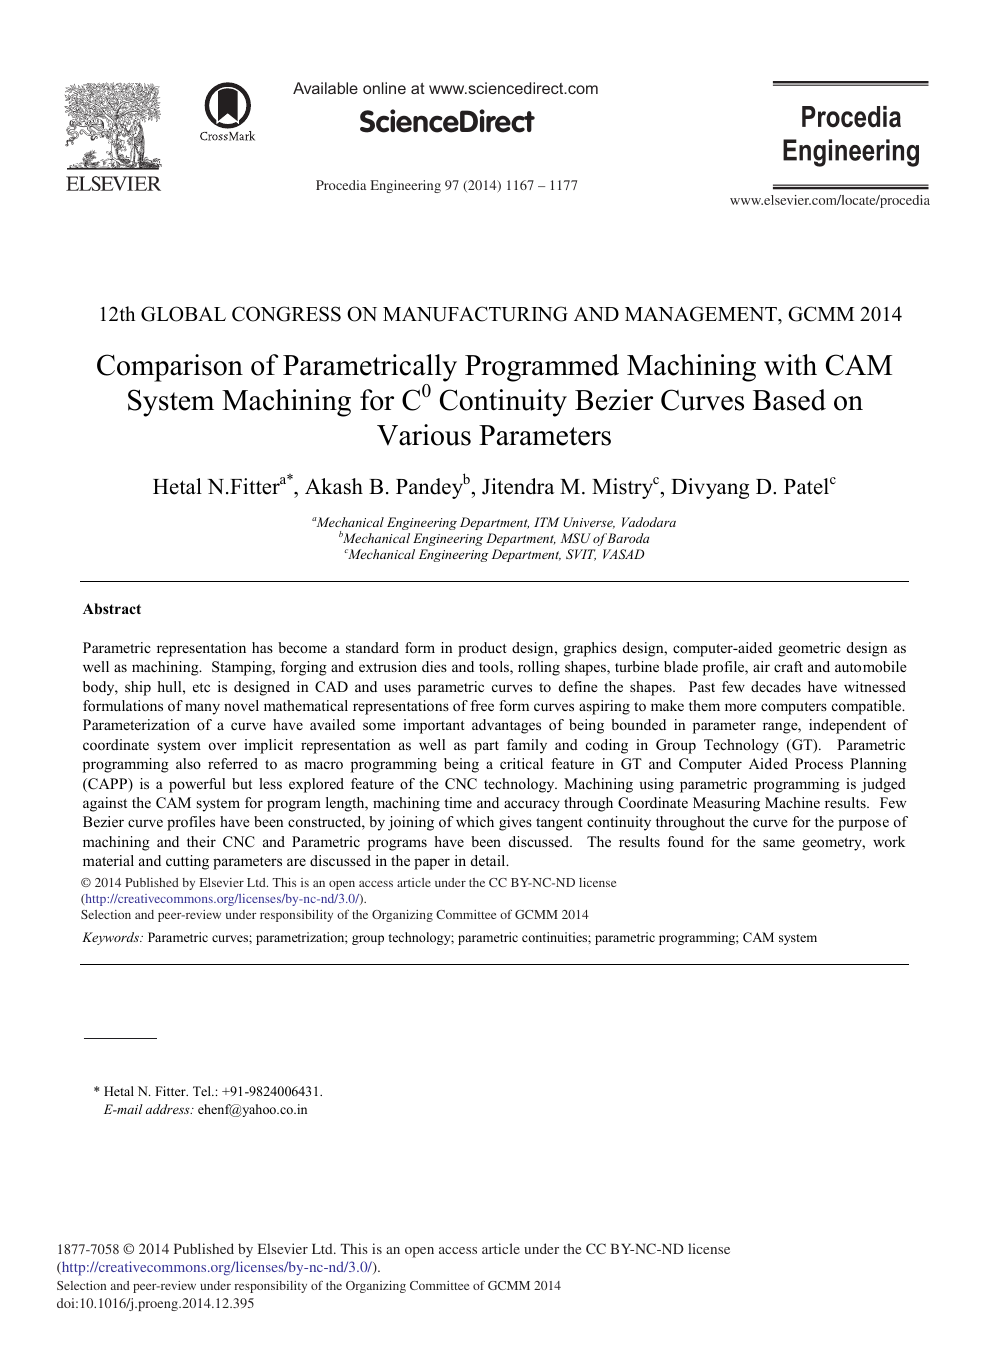 Comparison of Parametrically Programmed Machining with CAM System